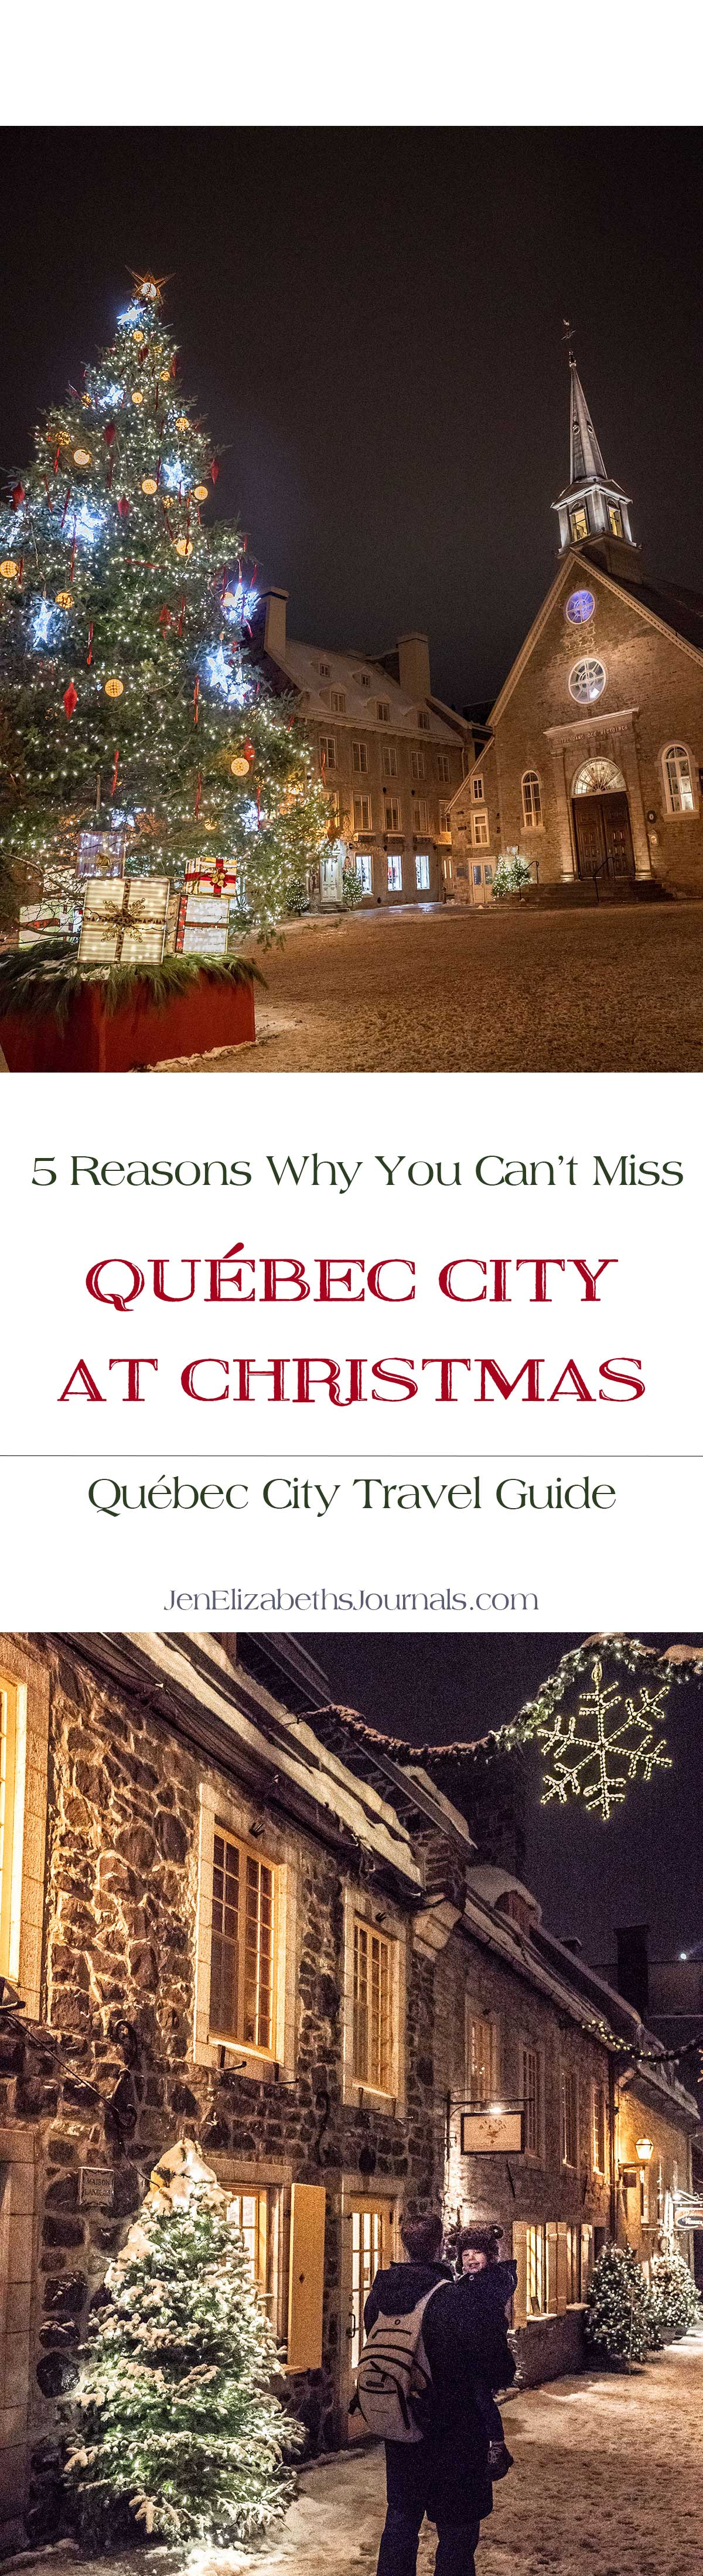 5-Reasons-Why-You-Cant-Miss-Quebec-City-During-the-Holidays